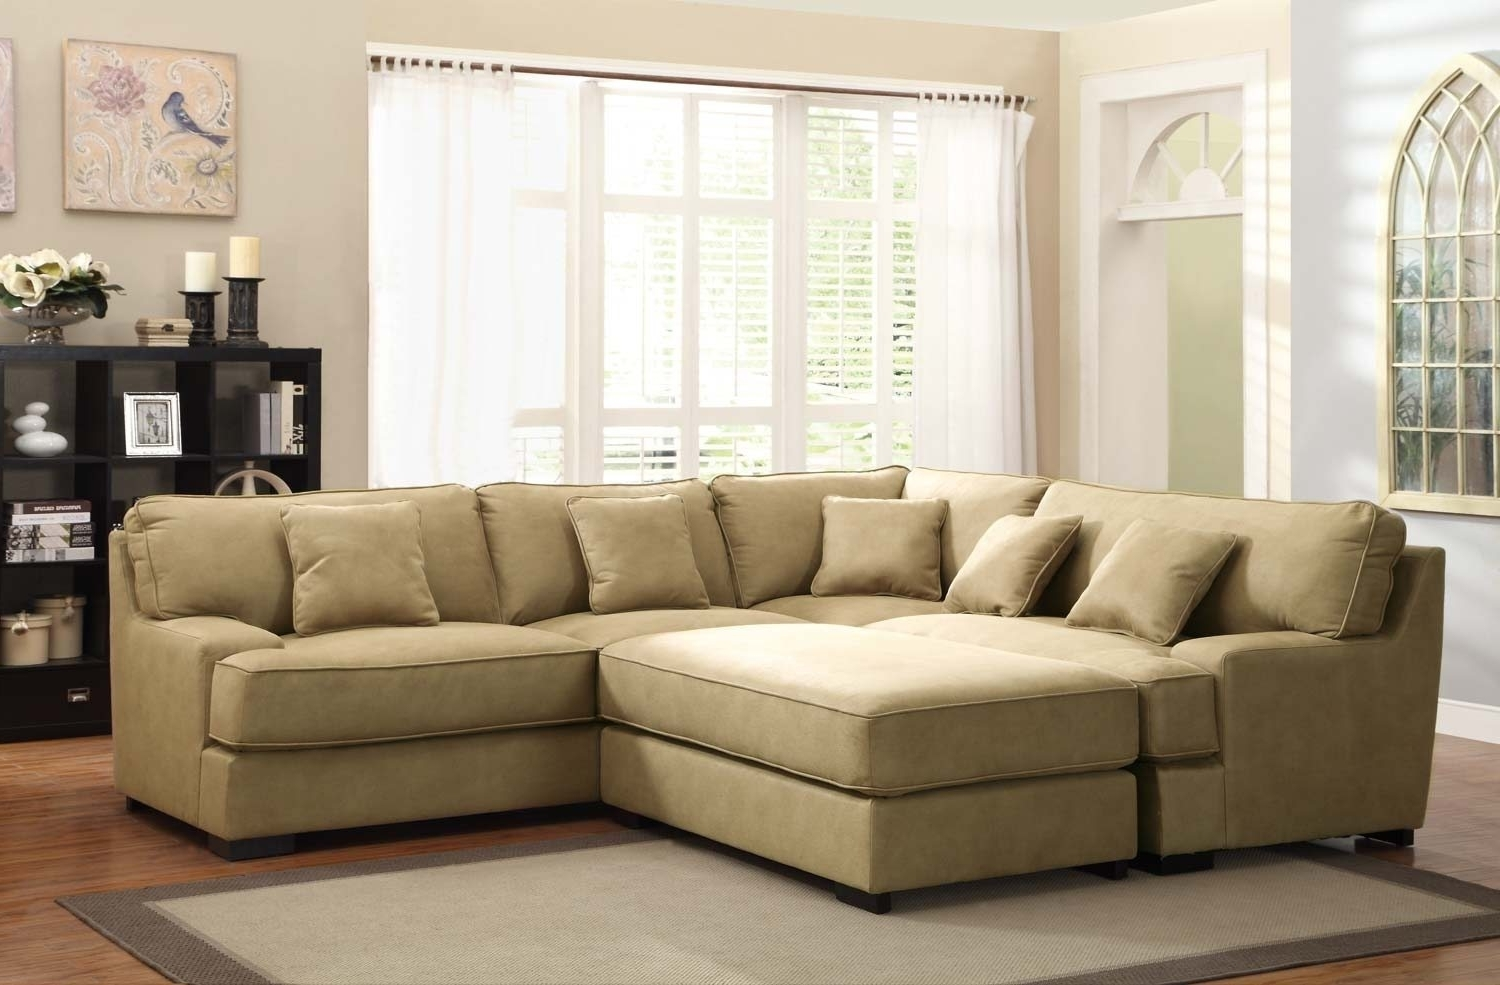 Sectional Sofas With Oversized Ottoman Regarding Recent Sofa : Sectional Sofa With Oversized Ottoman Oversized Sectional (View 11 of 15)